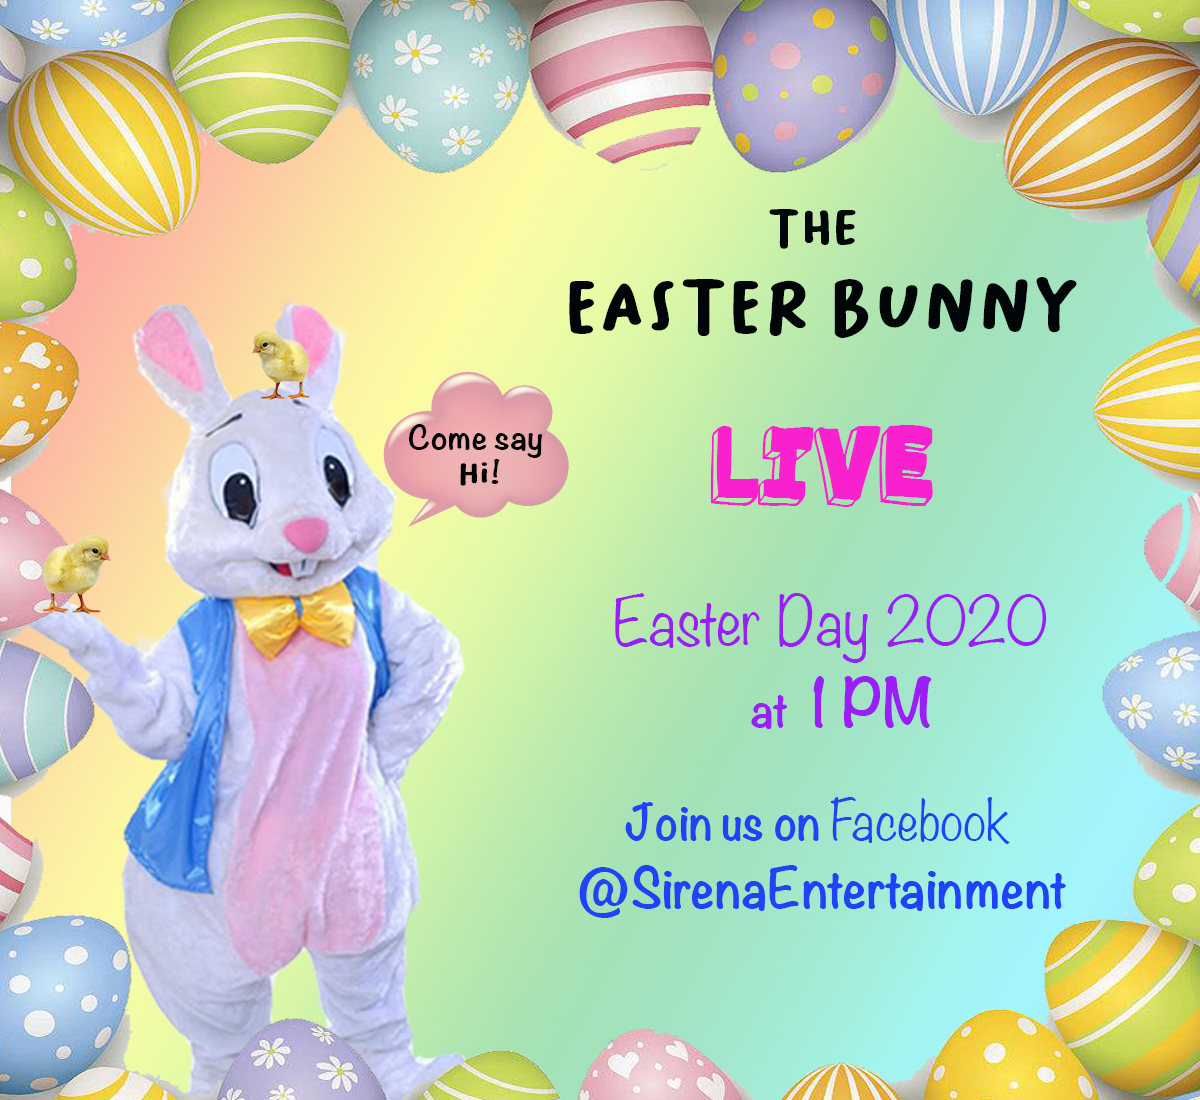 Kids can now have Easter fun at home with Sirena Entertainment's Easter Bunny Facebook LIVE Event